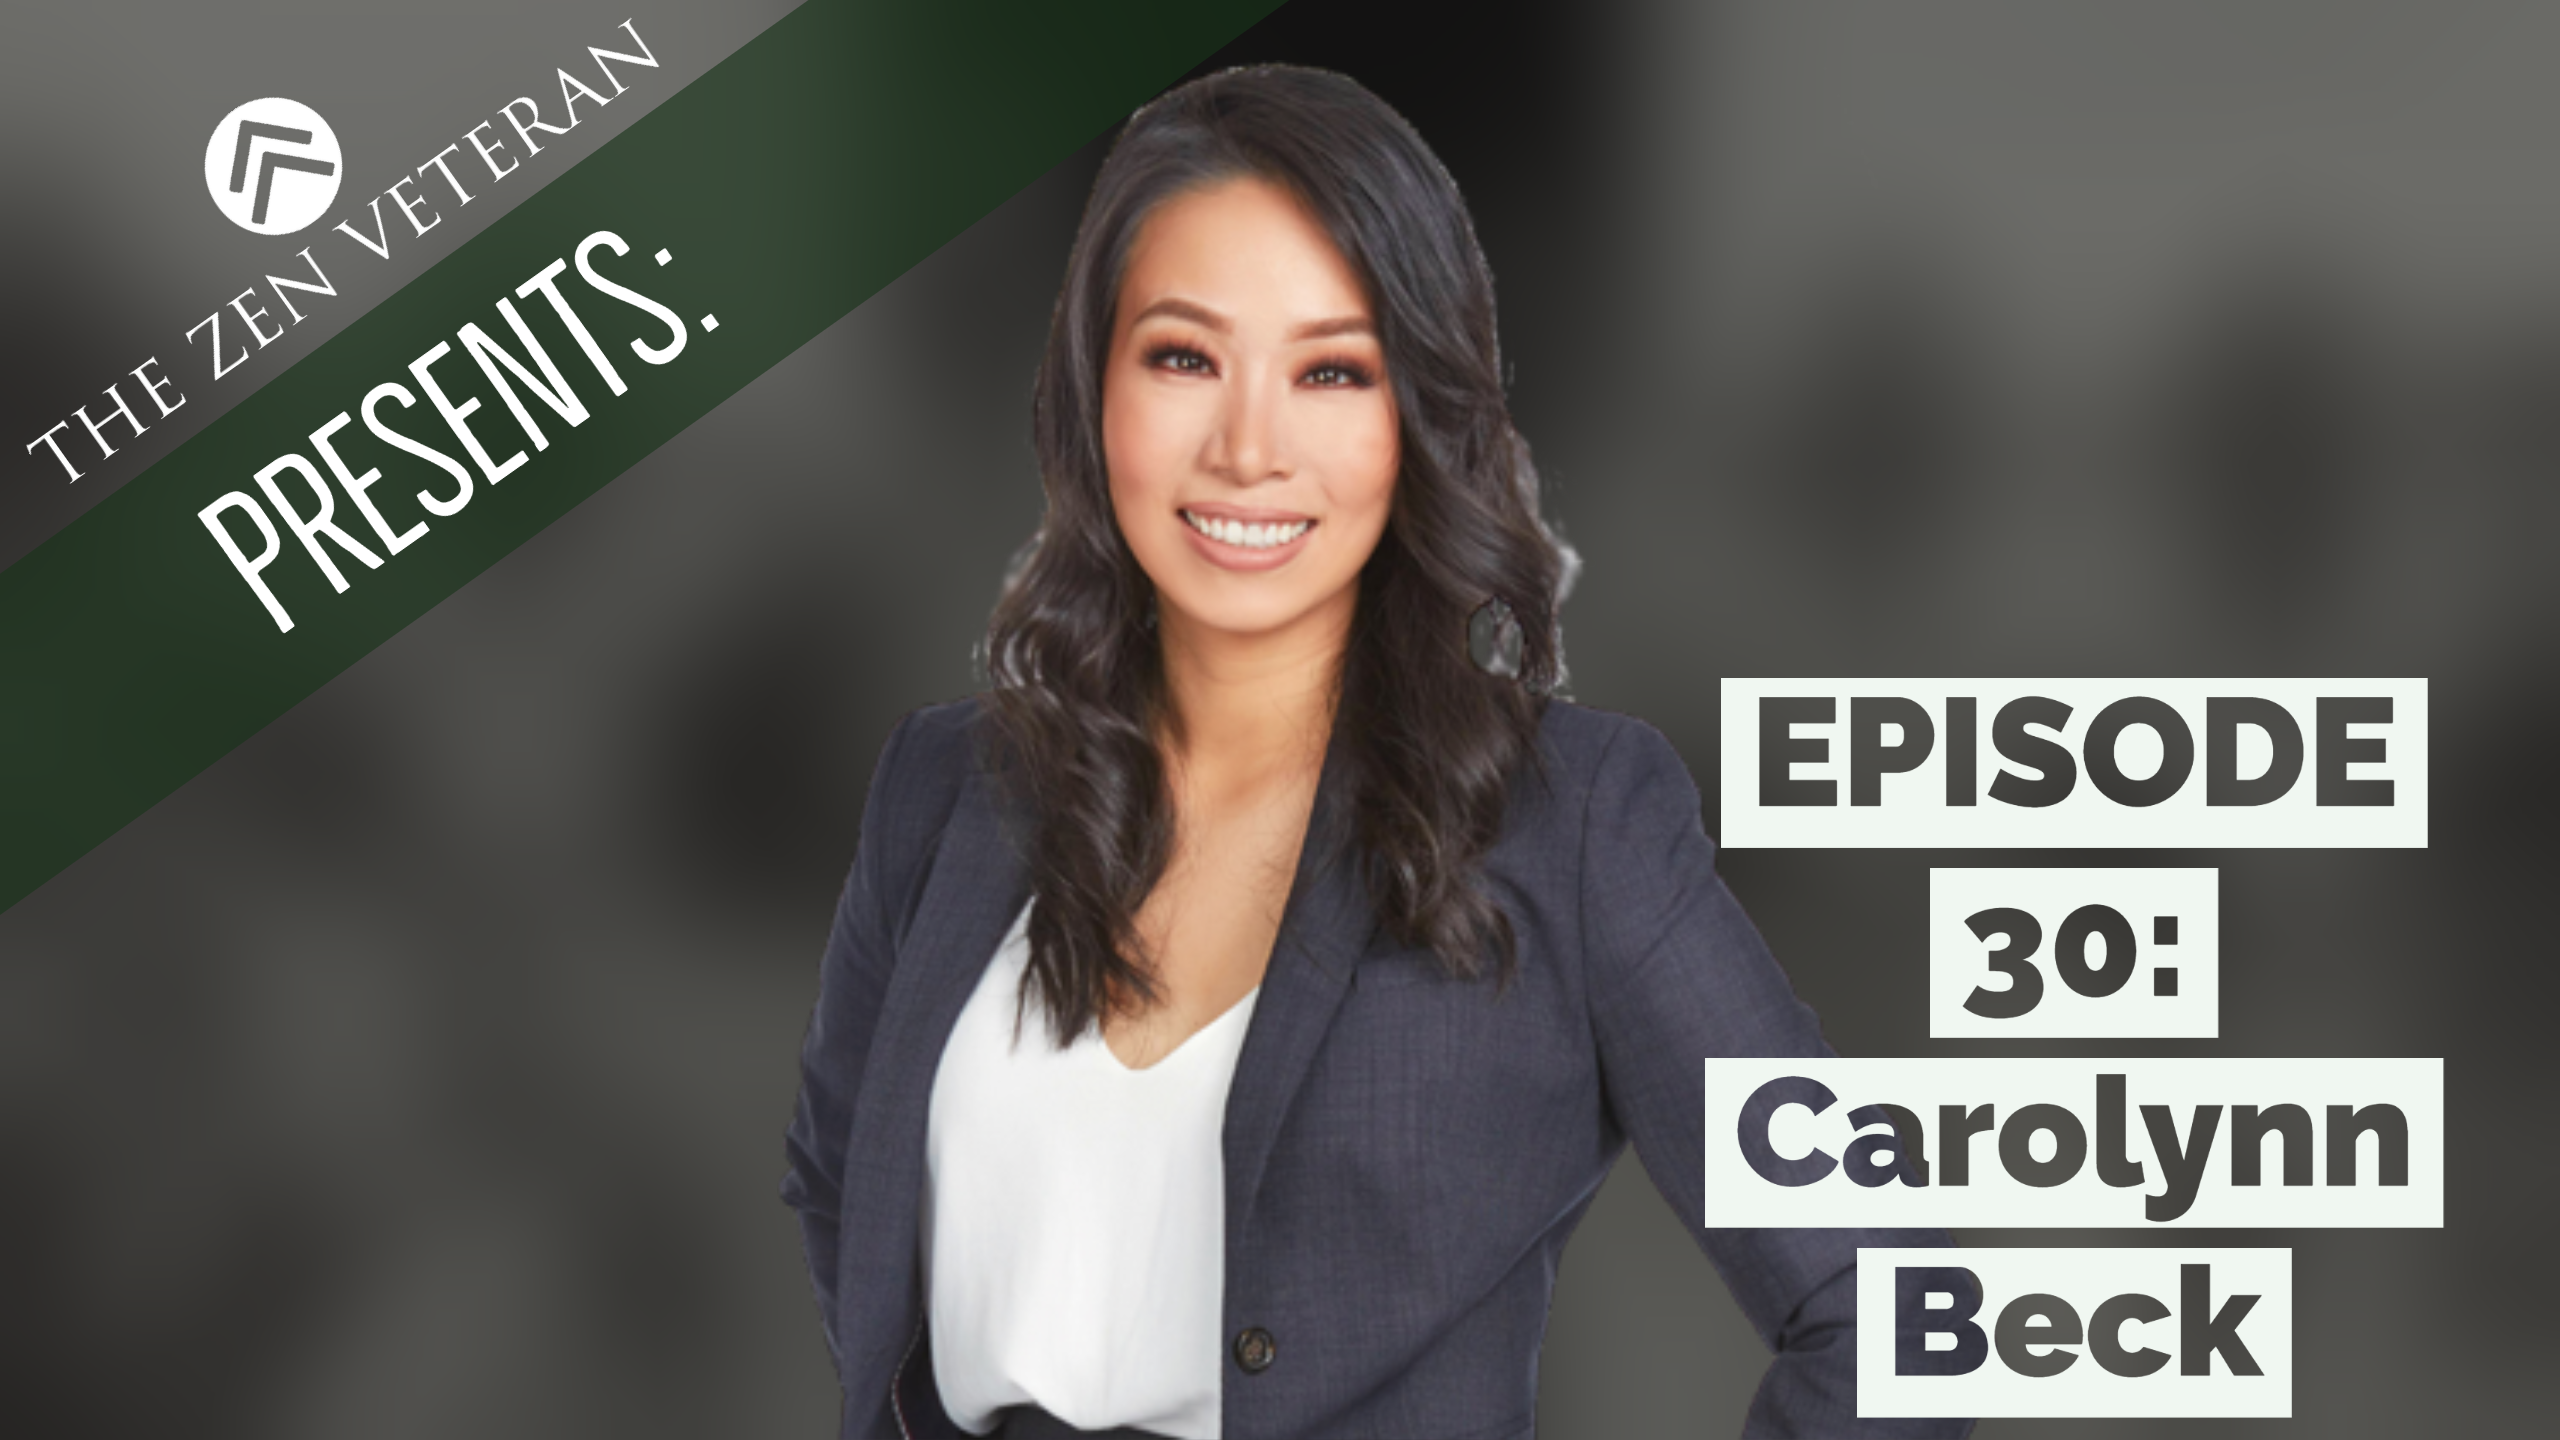 Carolynn Beck – Staring Into Space, Tripping Over Duffel Bags, and Why You're Not Dead (Episode #30)